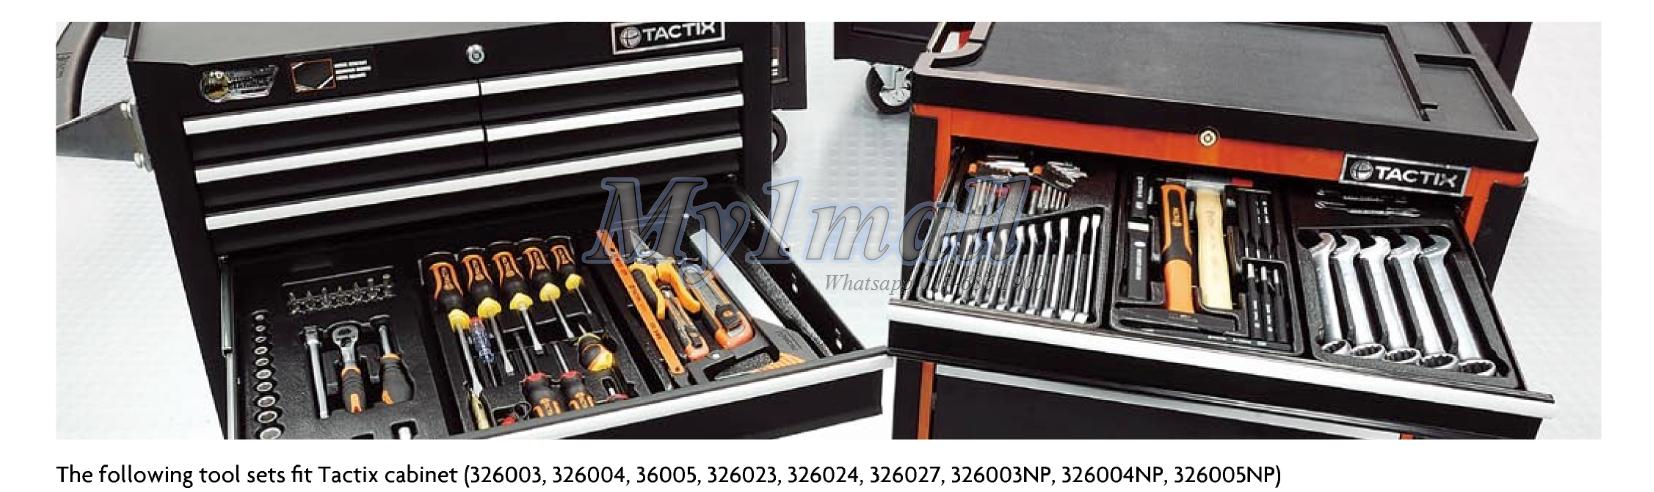 TACTIX 327504 TOOL SET 11PC